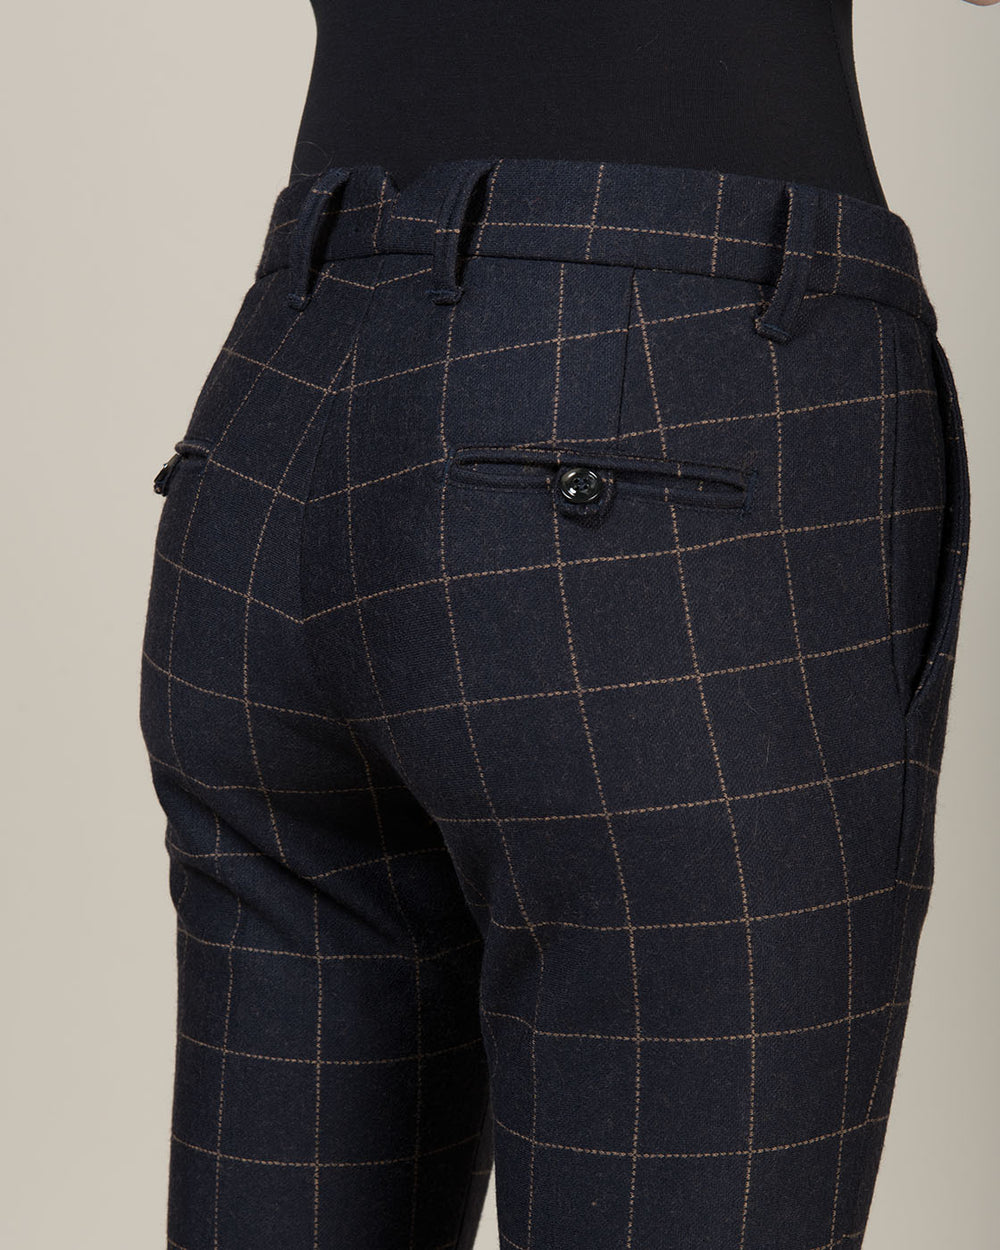 Dark Blue Pants with Large Beige Square Line Pattern